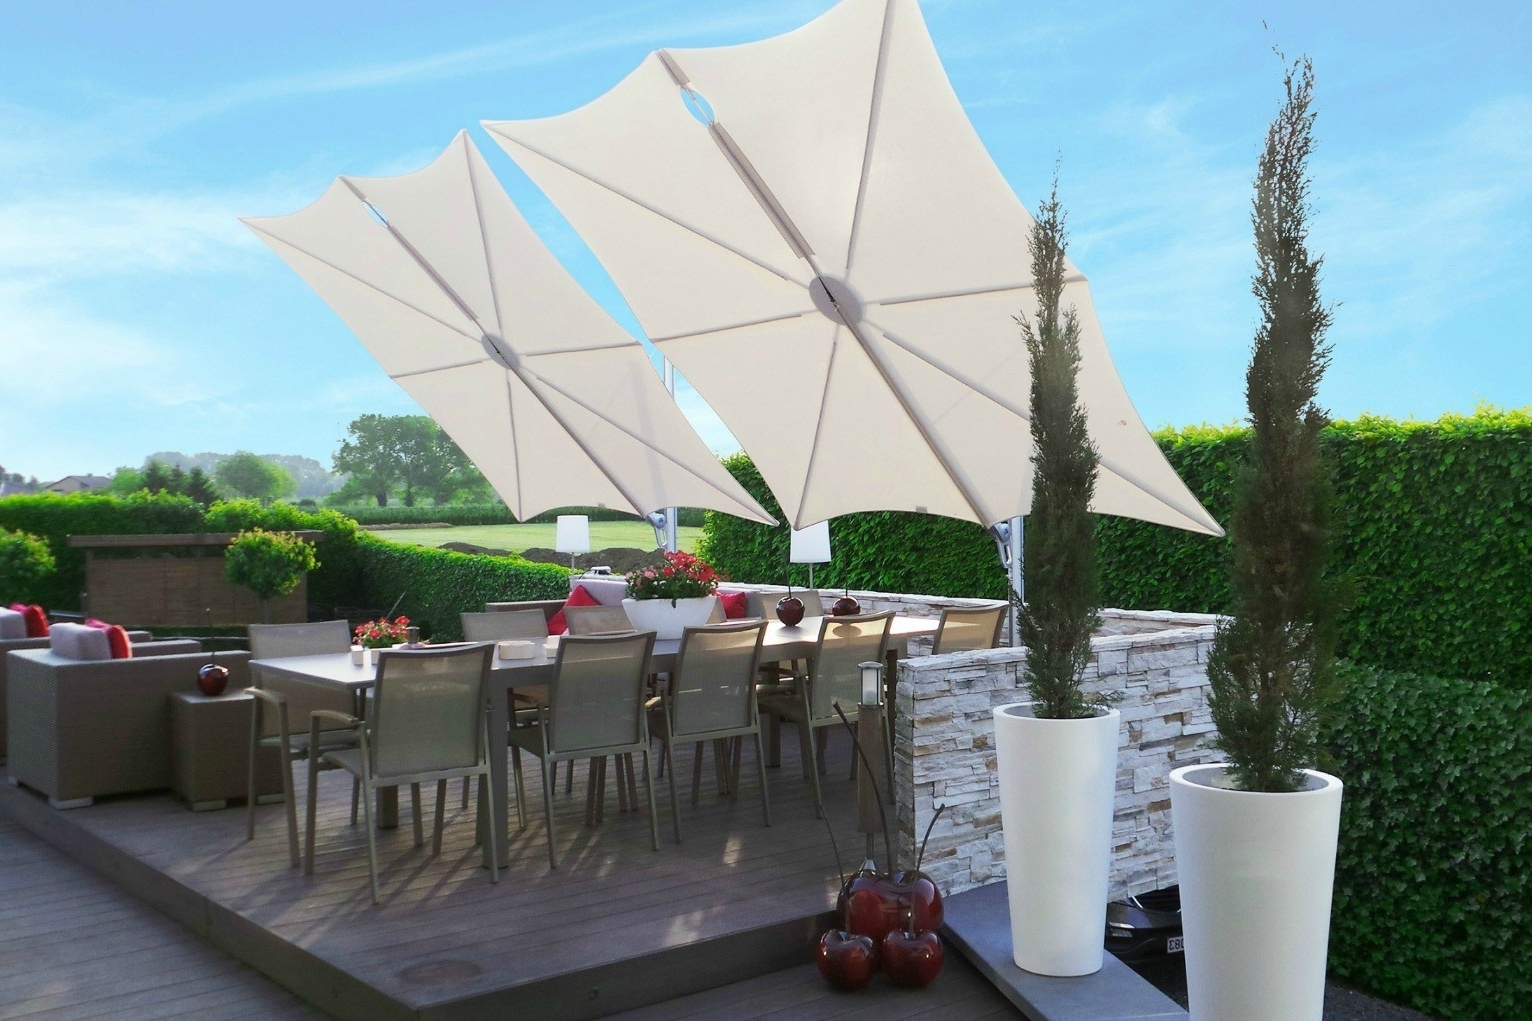 Widely Used Lovely High Wind Resistant Patio Umbrella F48X About Remodel Rustic Throughout Patio Umbrellas For High Wind Areas (View 19 of 20)